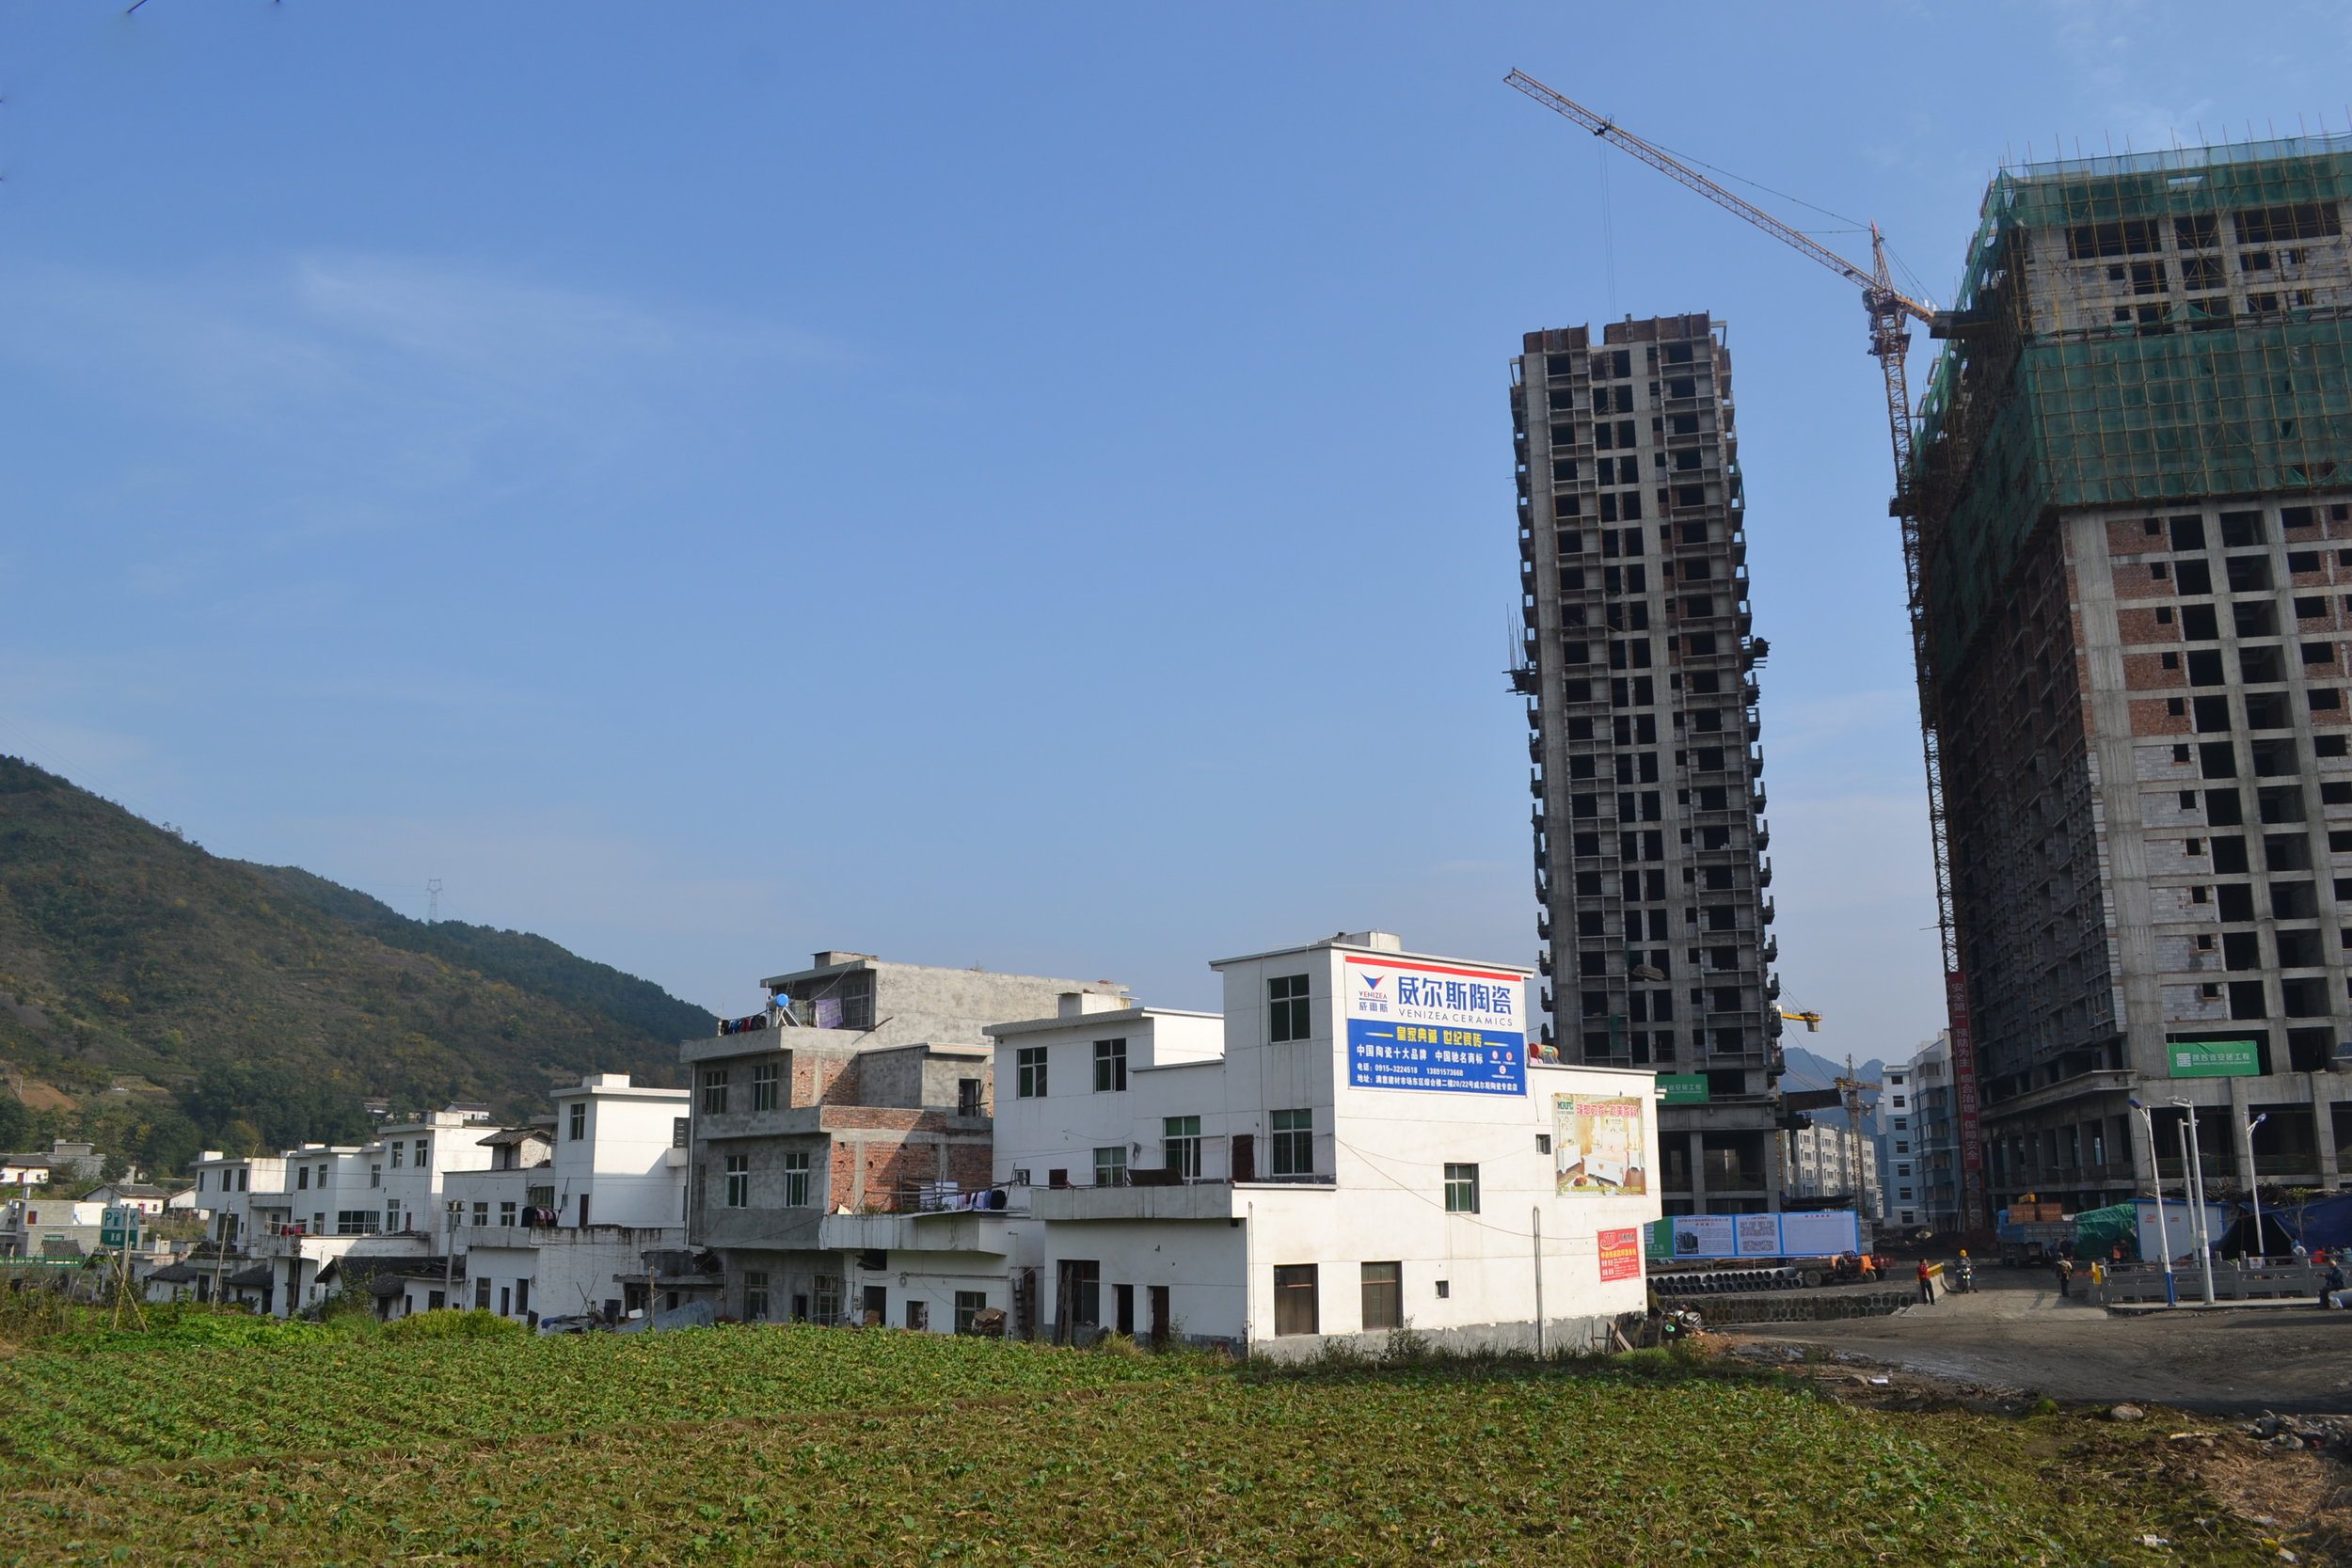 New apartments rise from the fields in Qiyan, Sha'anxi province